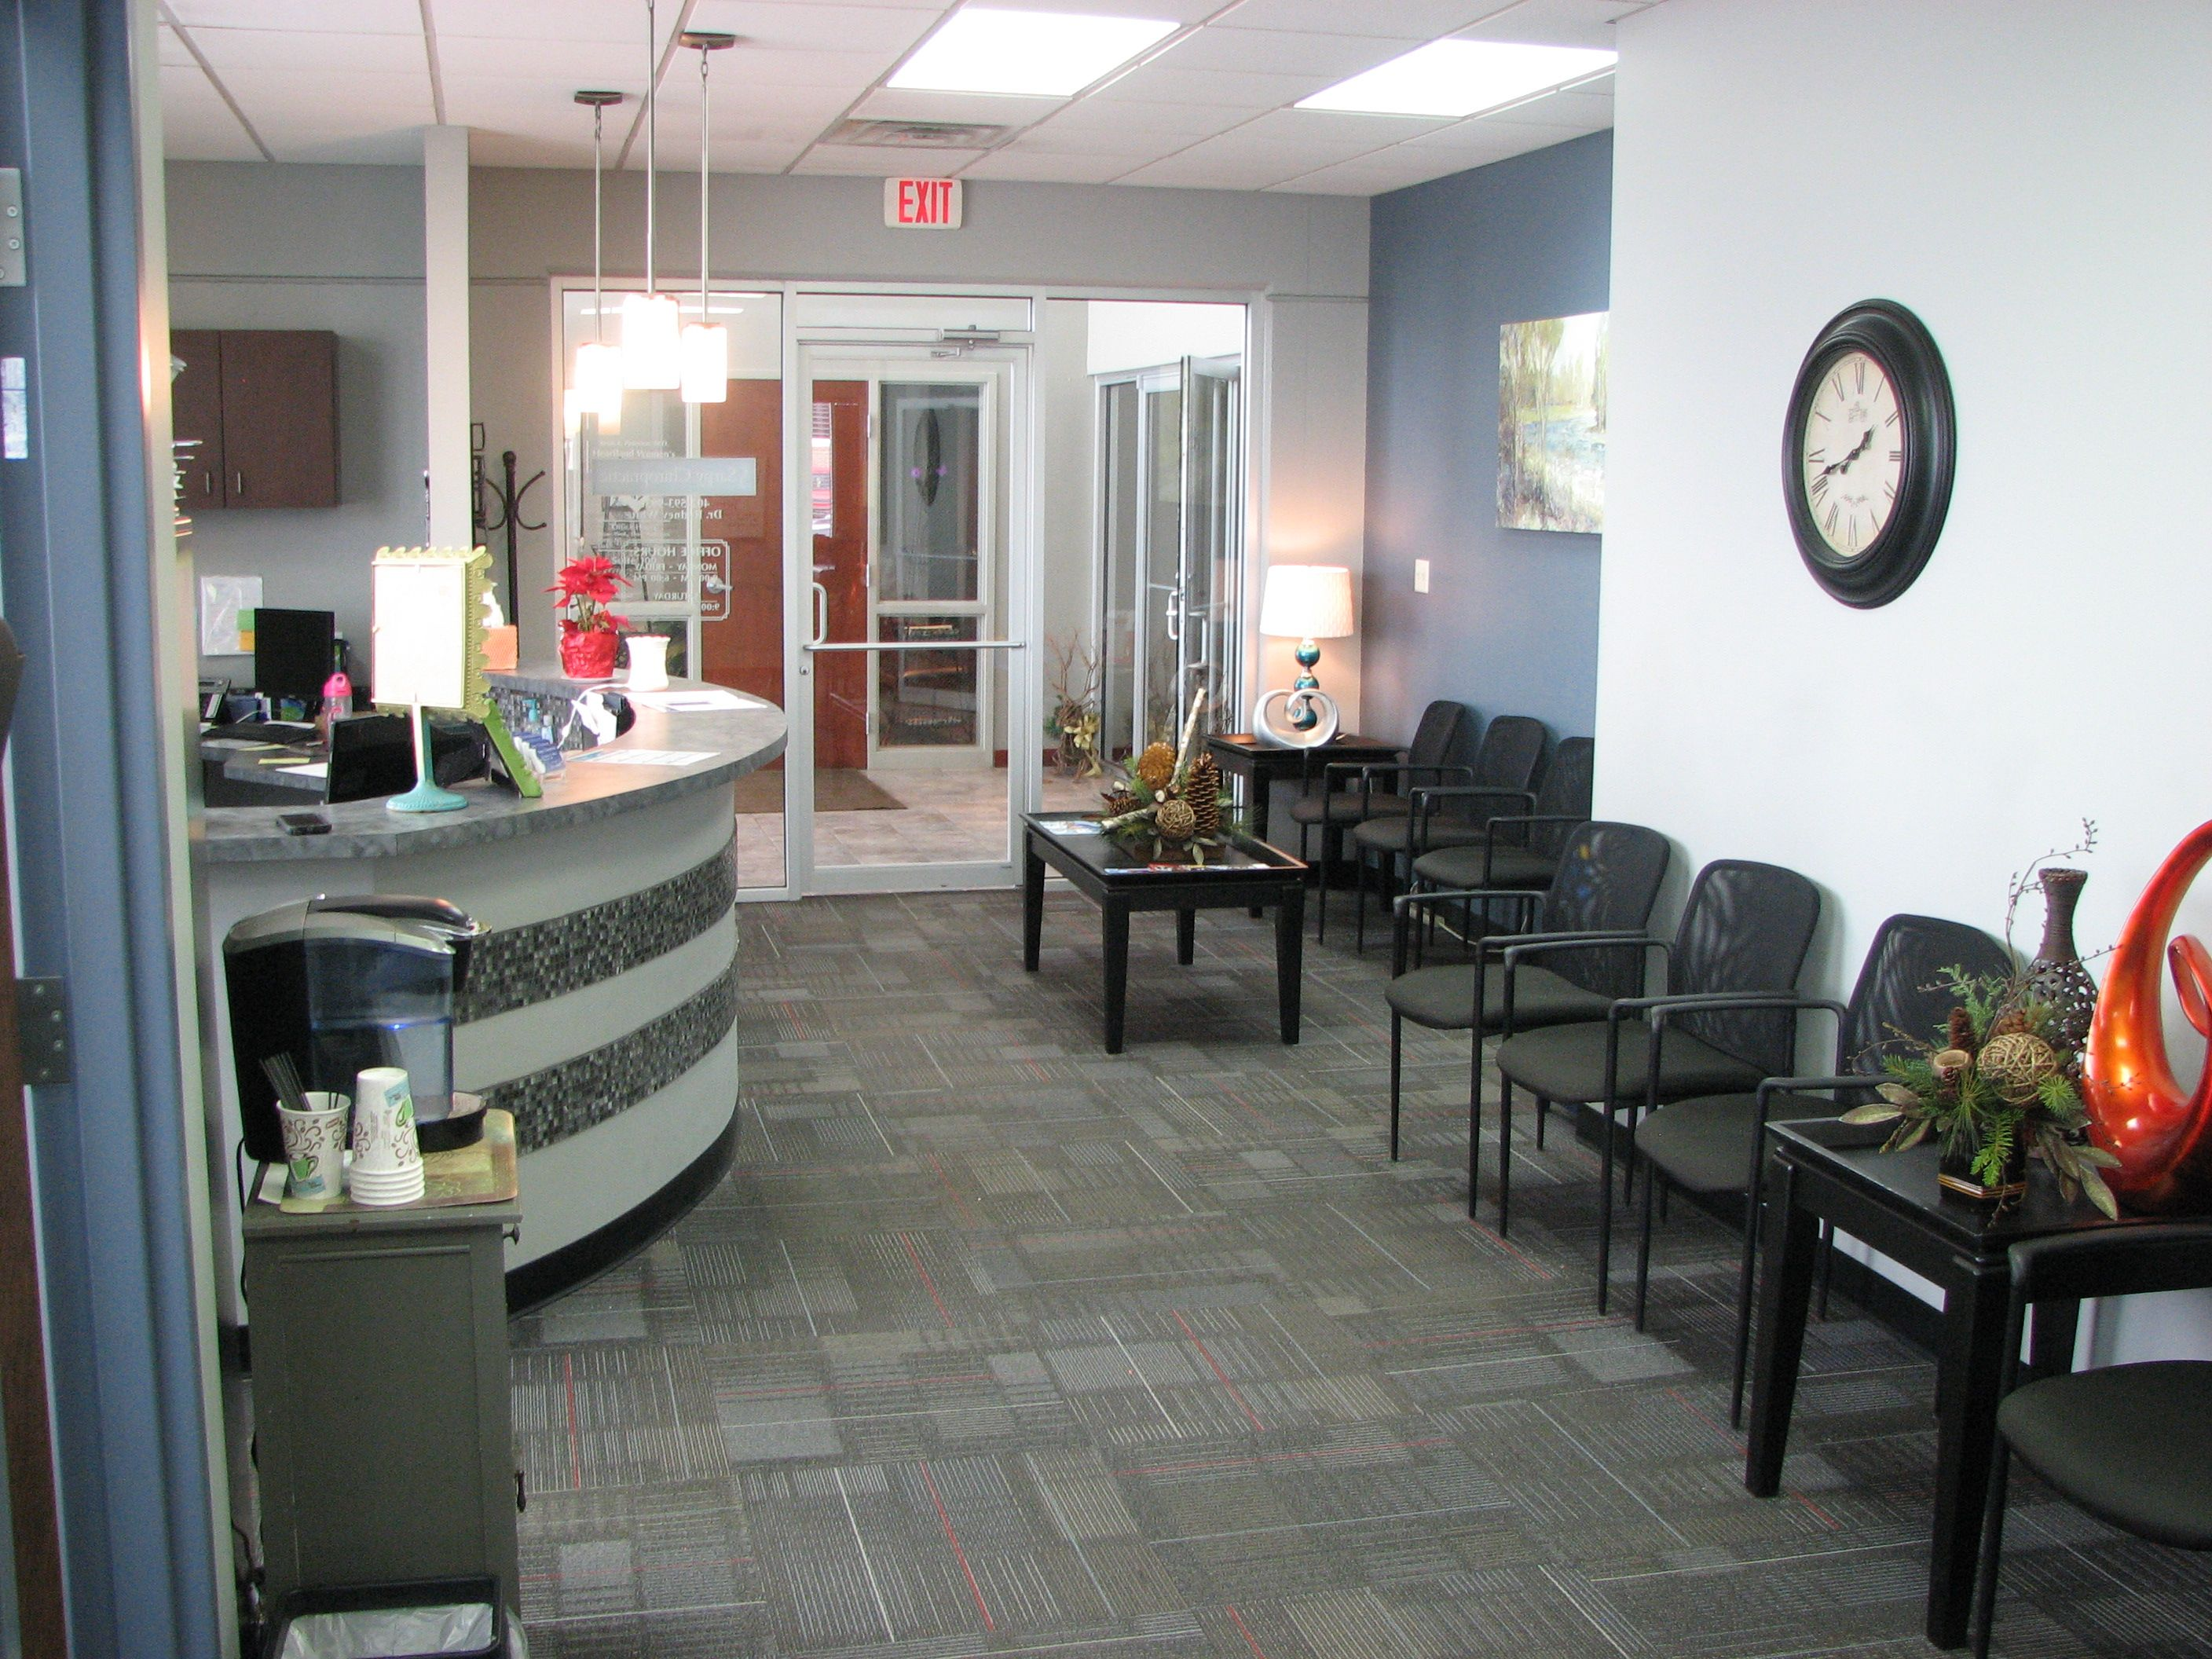 Inside sarpy chiropractic the reception area